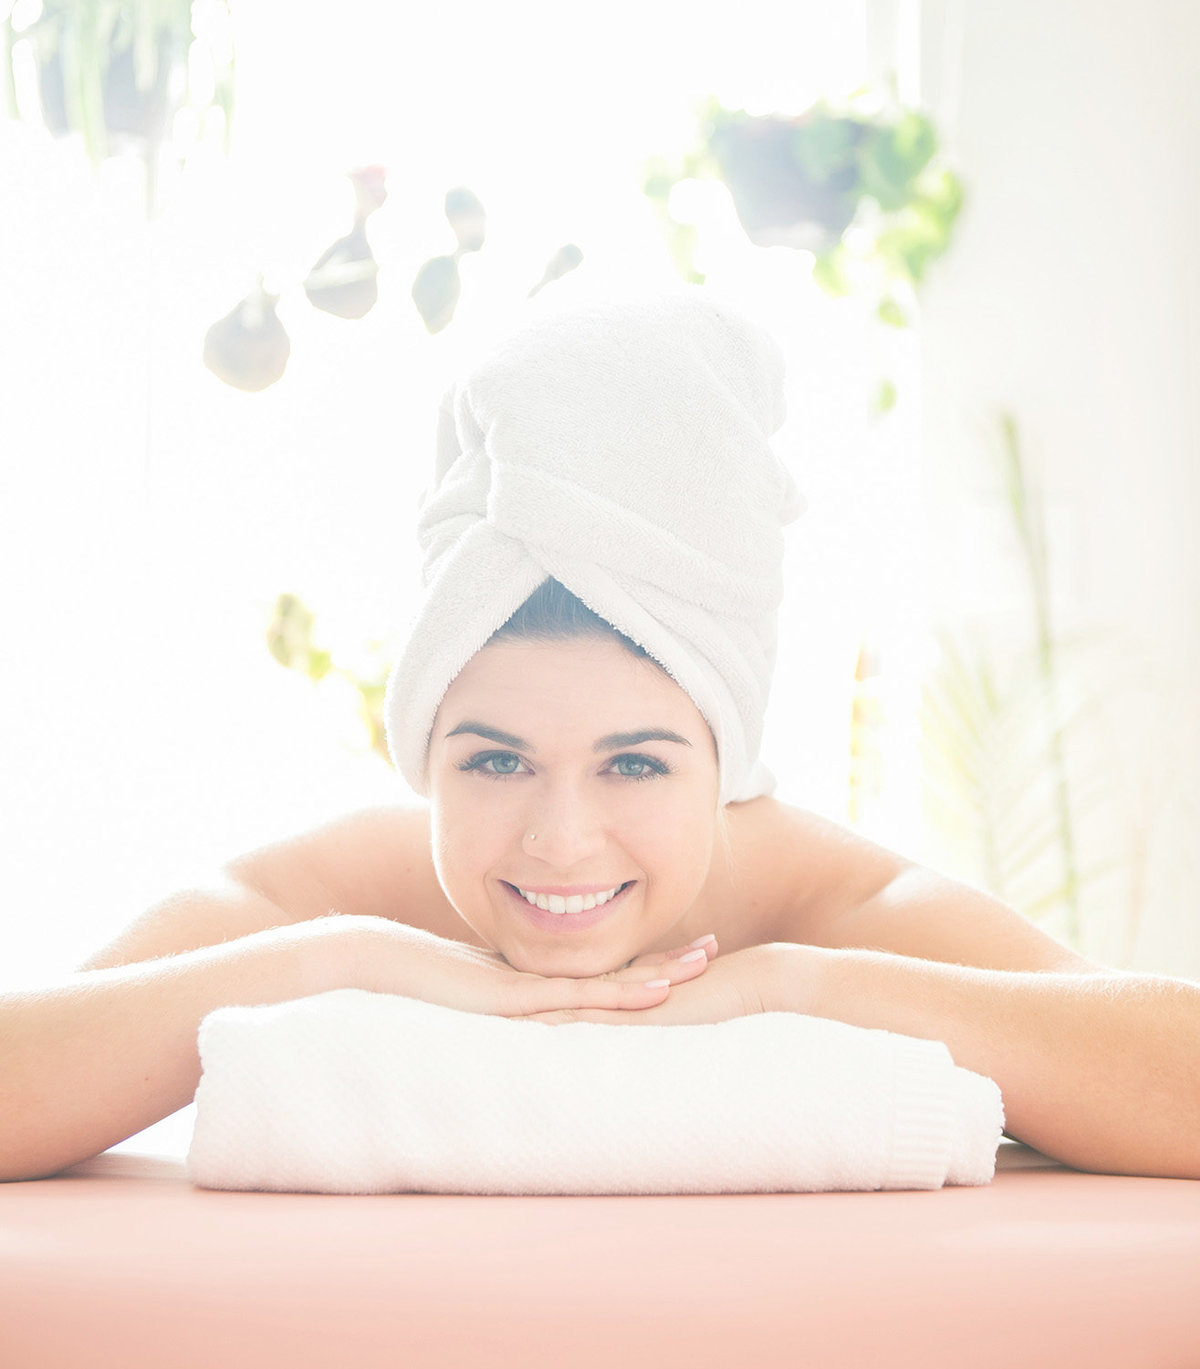 Woman on massage table with towel on head